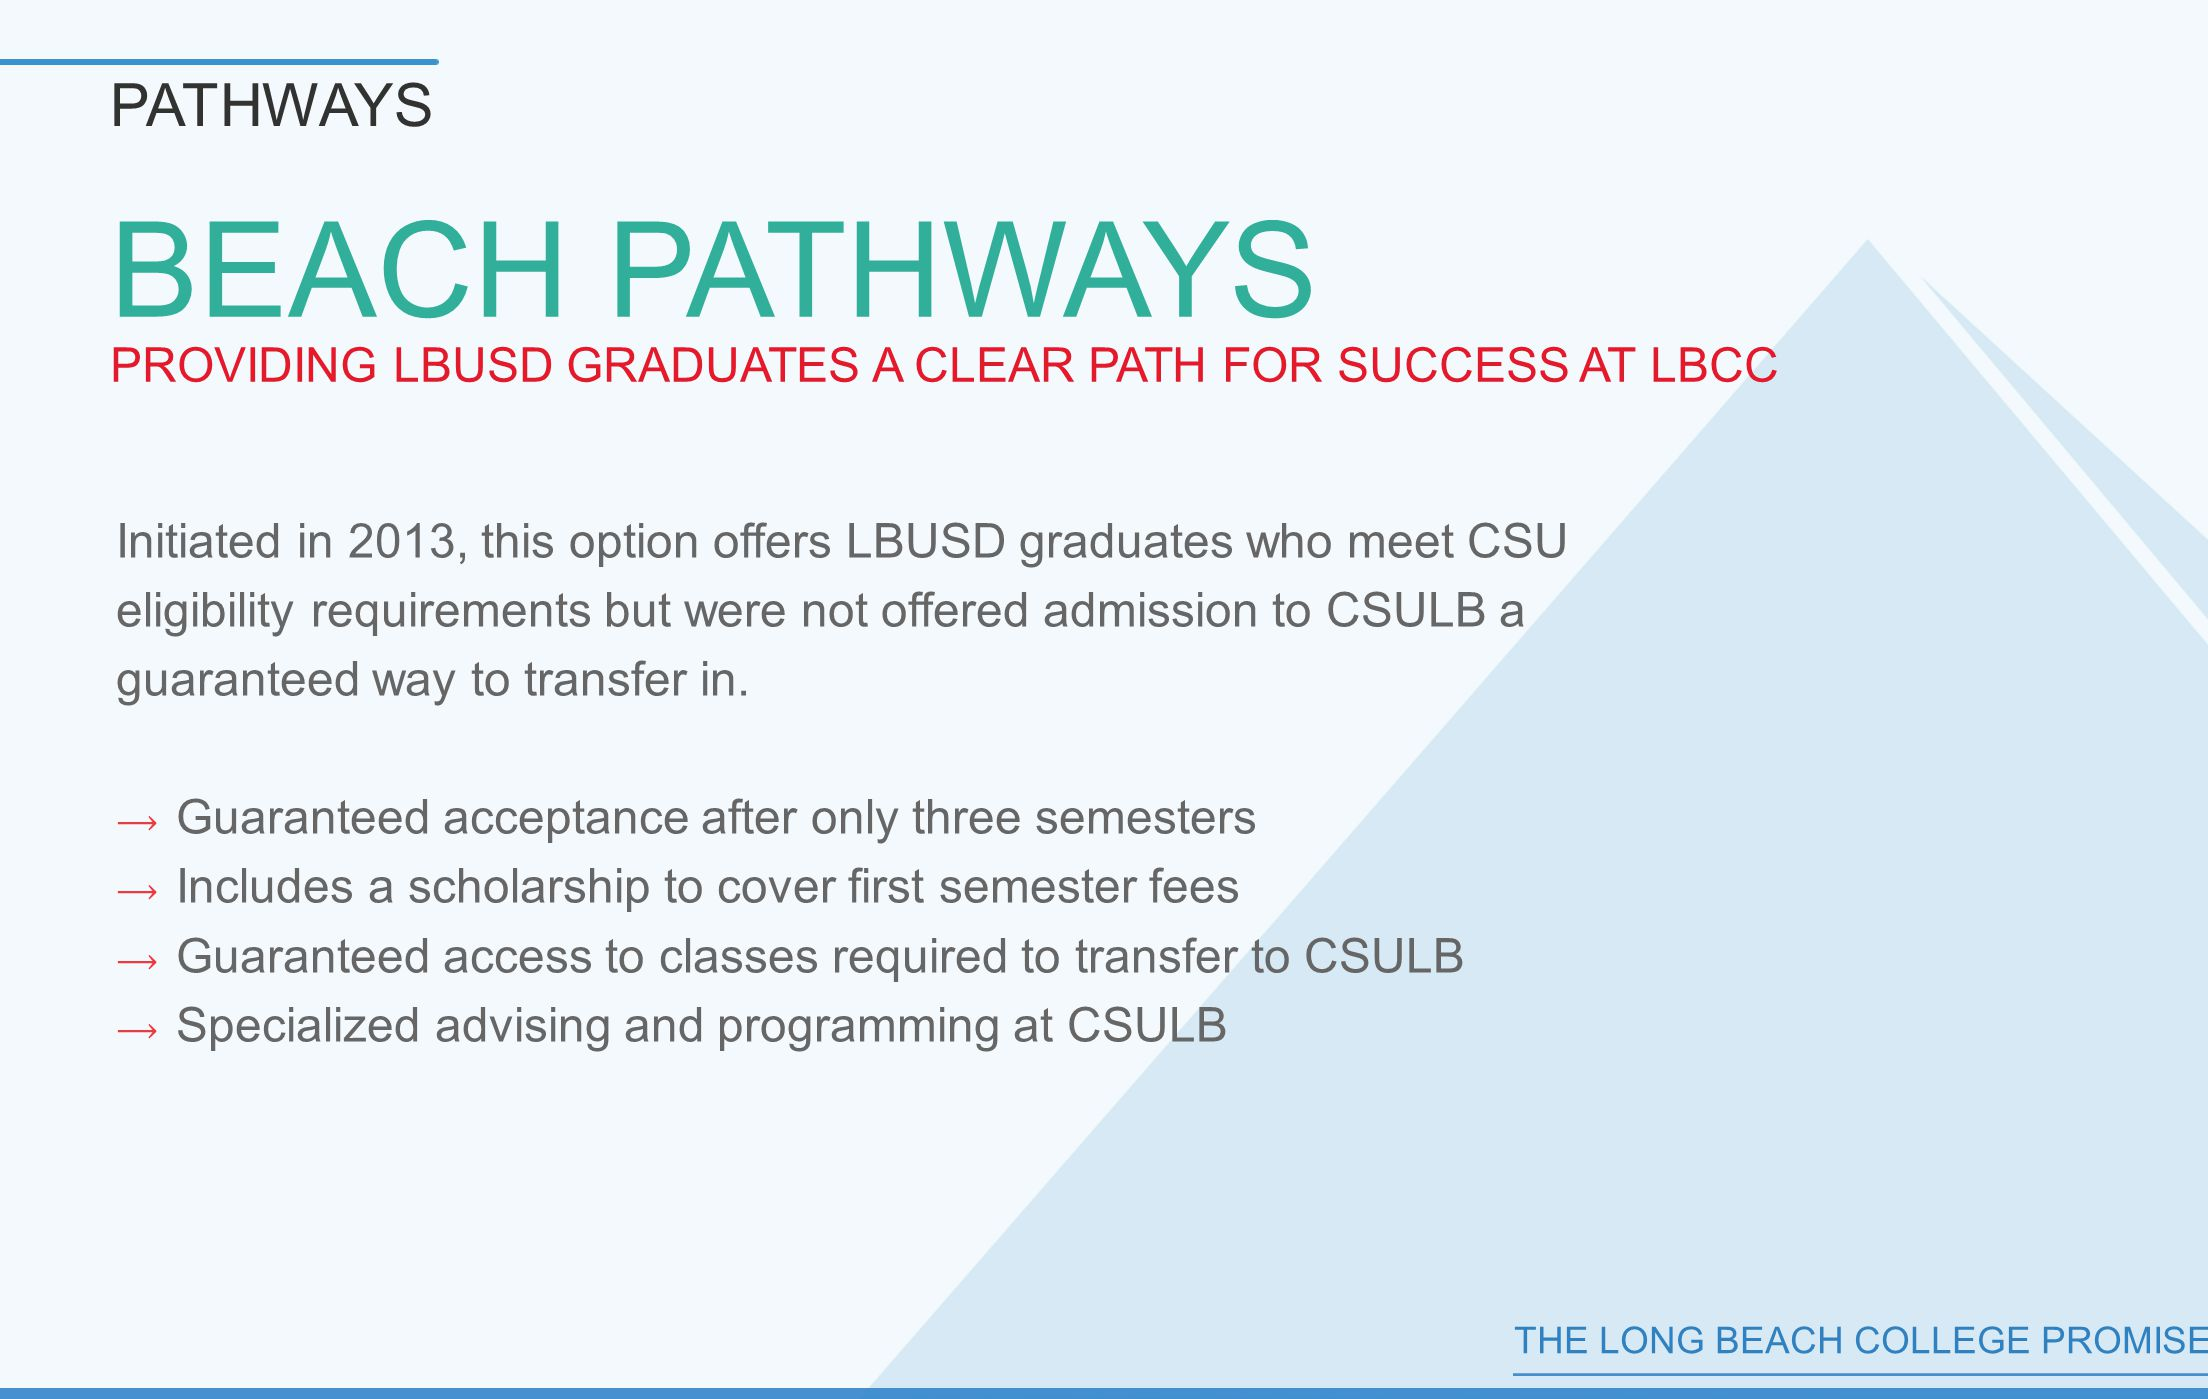 THE LONG BEACH COLLEGE PROMISE BEACH PATHWAYS PROVIDING LBUSD GRADUATES A CLEAR PATH FOR SUCCESS AT LBCC PATHWAYS Initiated in 2013, this option offers LBUSD graduates who meet CSU eligibility requirements but were not offered admission to CSULB a guaranteed way to transfer in.